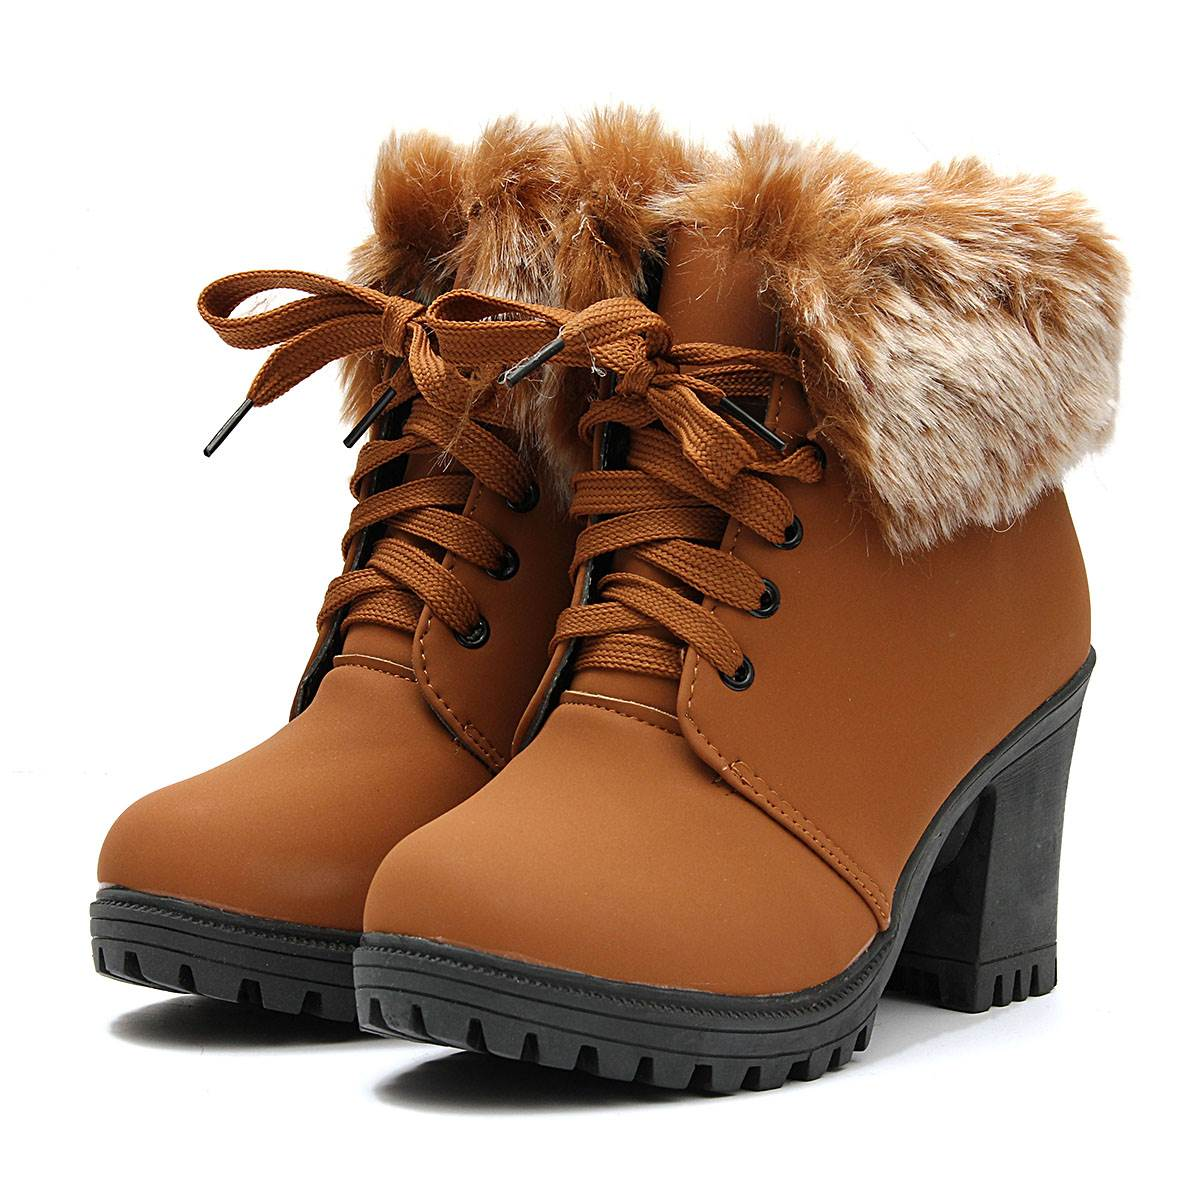 Warm Plush Pumps Booties Fashion Sexy Womens High Heel Ankle Boots Autumn Winter Platform Lace Up Knight Snow Boots Shoes<br><br>Aliexpress